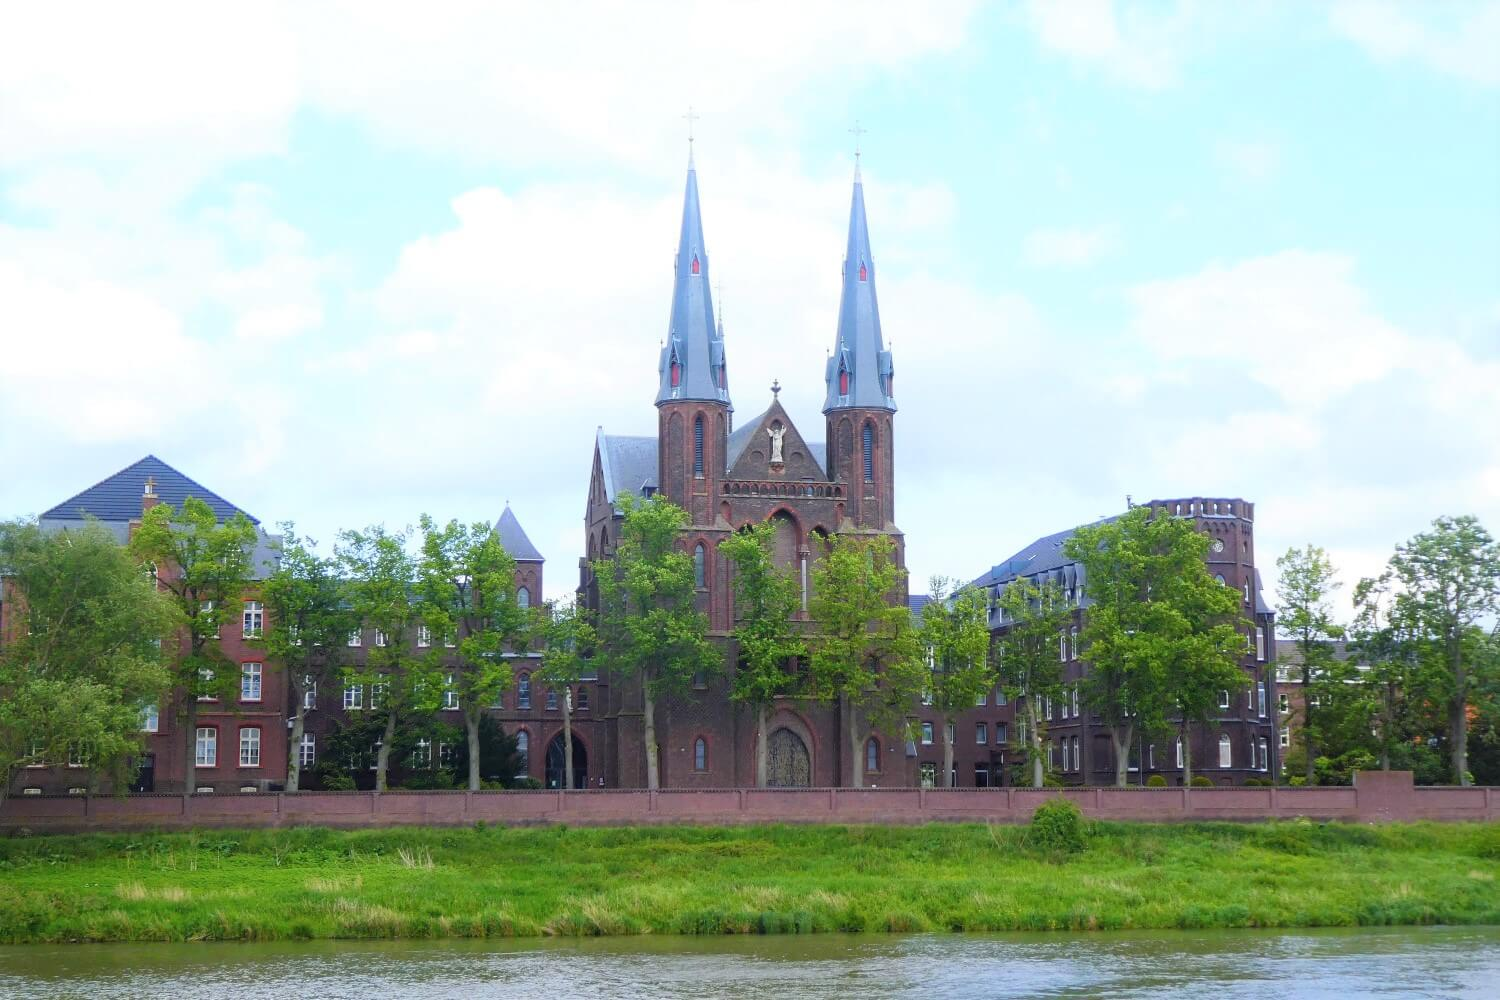 The view of the Mission House St. Michael on the Meuse